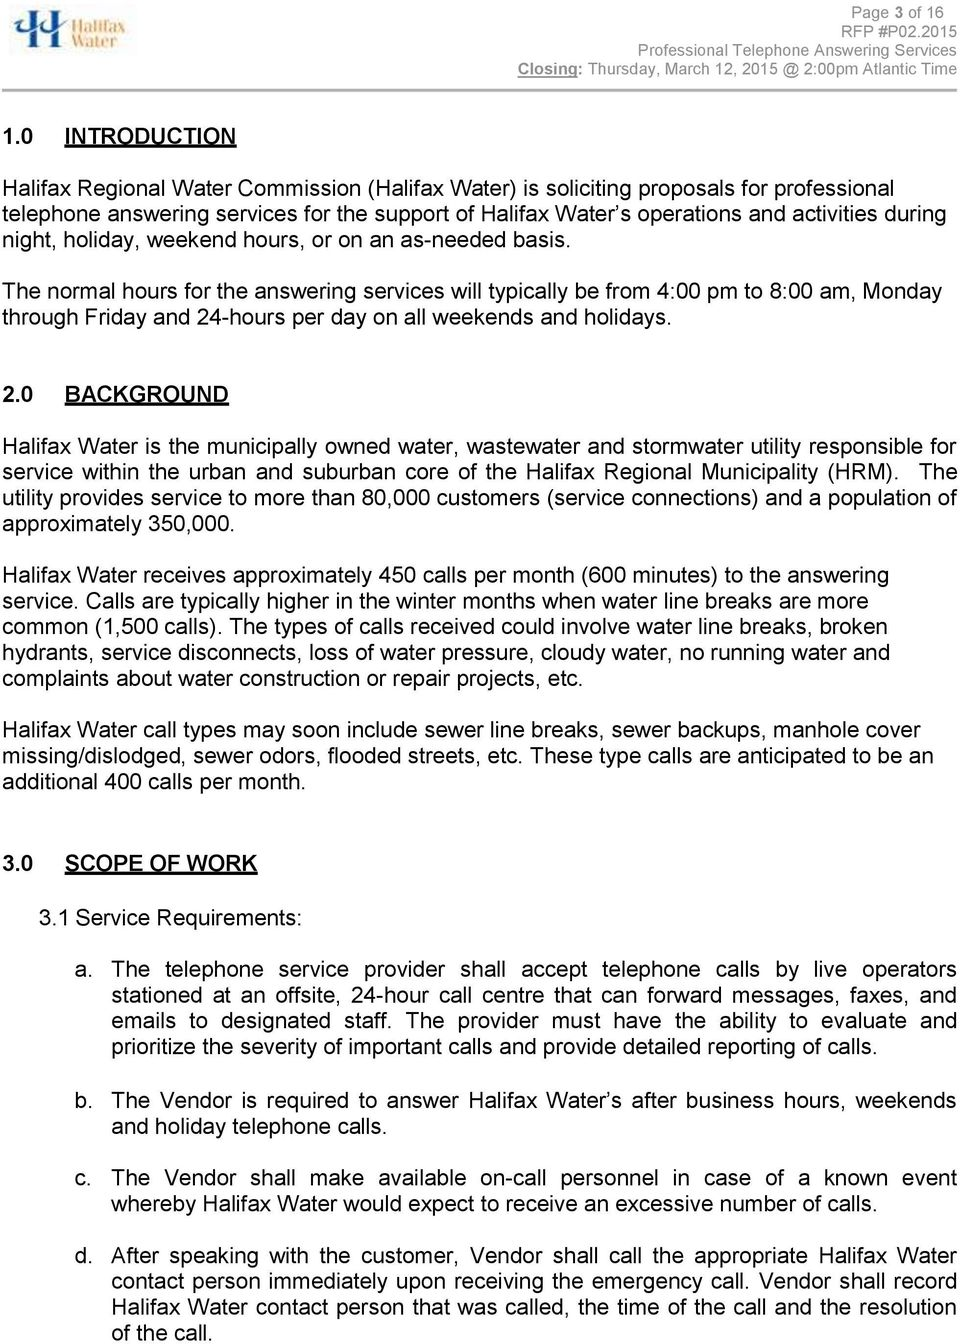 REQUEST FOR PROPOSAL P PROFESSIONAL TELEPHONE ANSWERING SERVICES - PDF